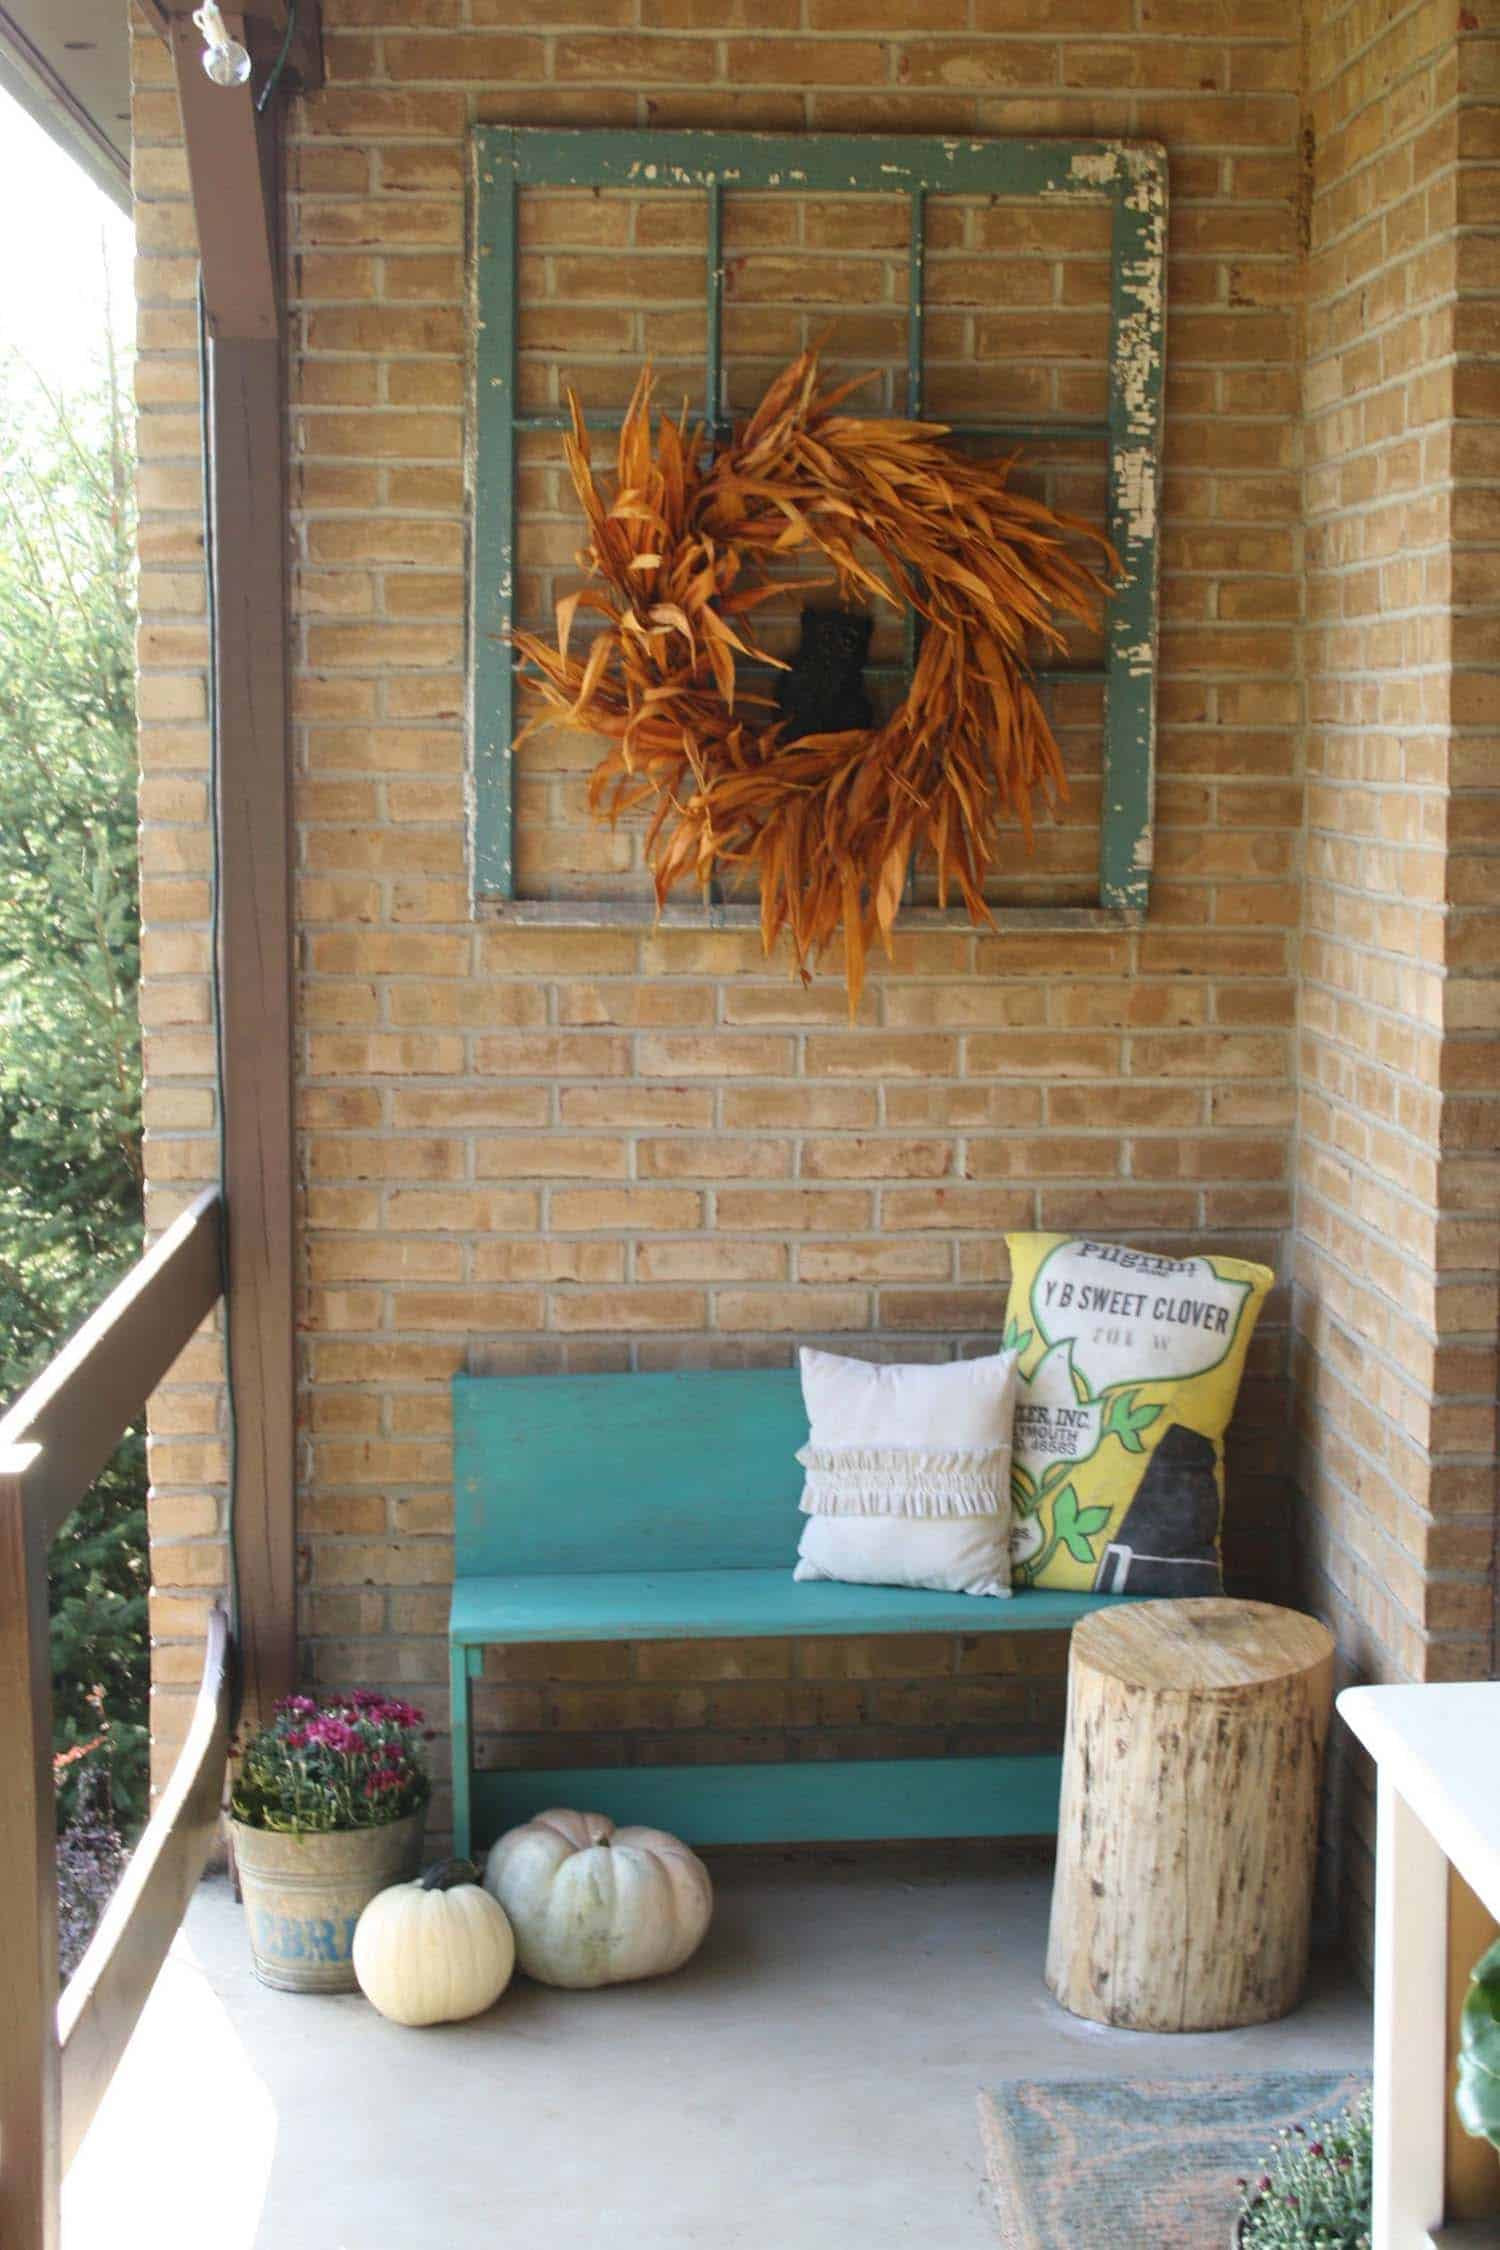 Inspiring Fall Decor Ideas-20-1 Kindesign